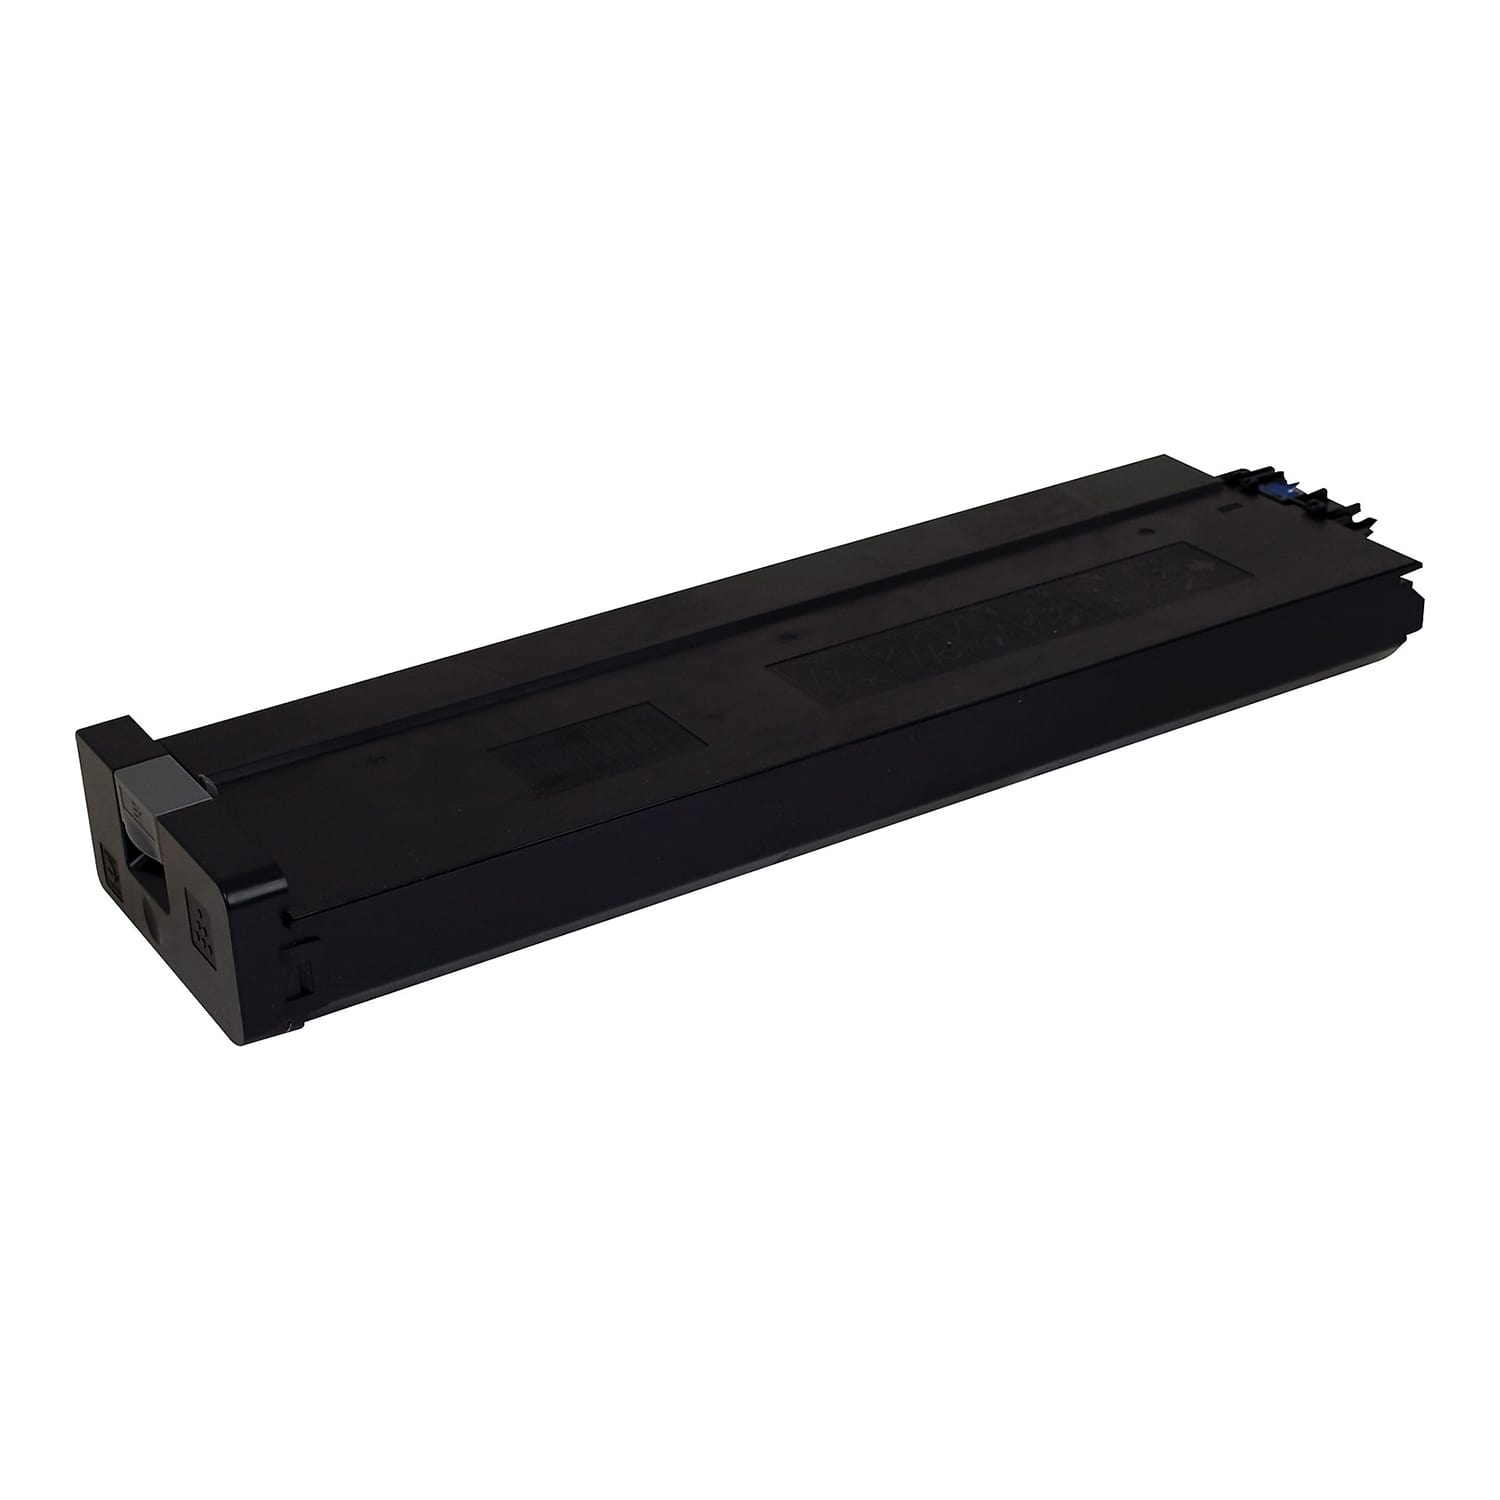 MX-50NTBA Toner Cartridge - Sharp Compatible (Black)